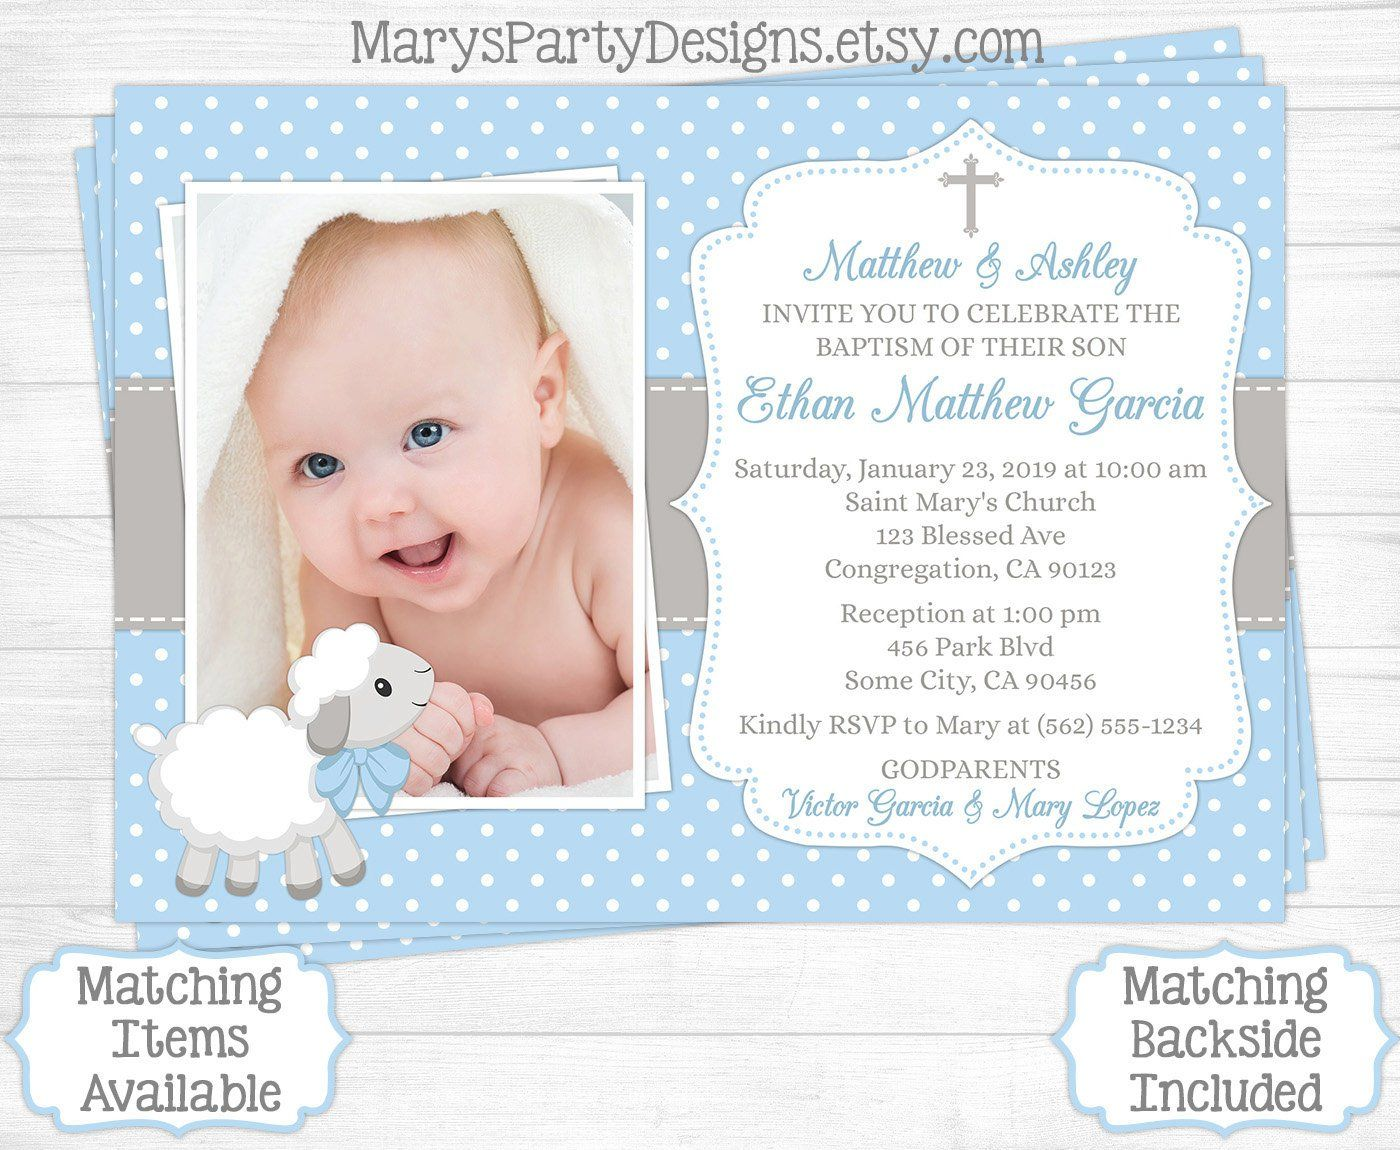 Baptismal invitation background template baptism invitations lamb baptism invitation boy first birthday christening baptismal baby blue gray sheep photo picture invite evite printable digital stopboris Images